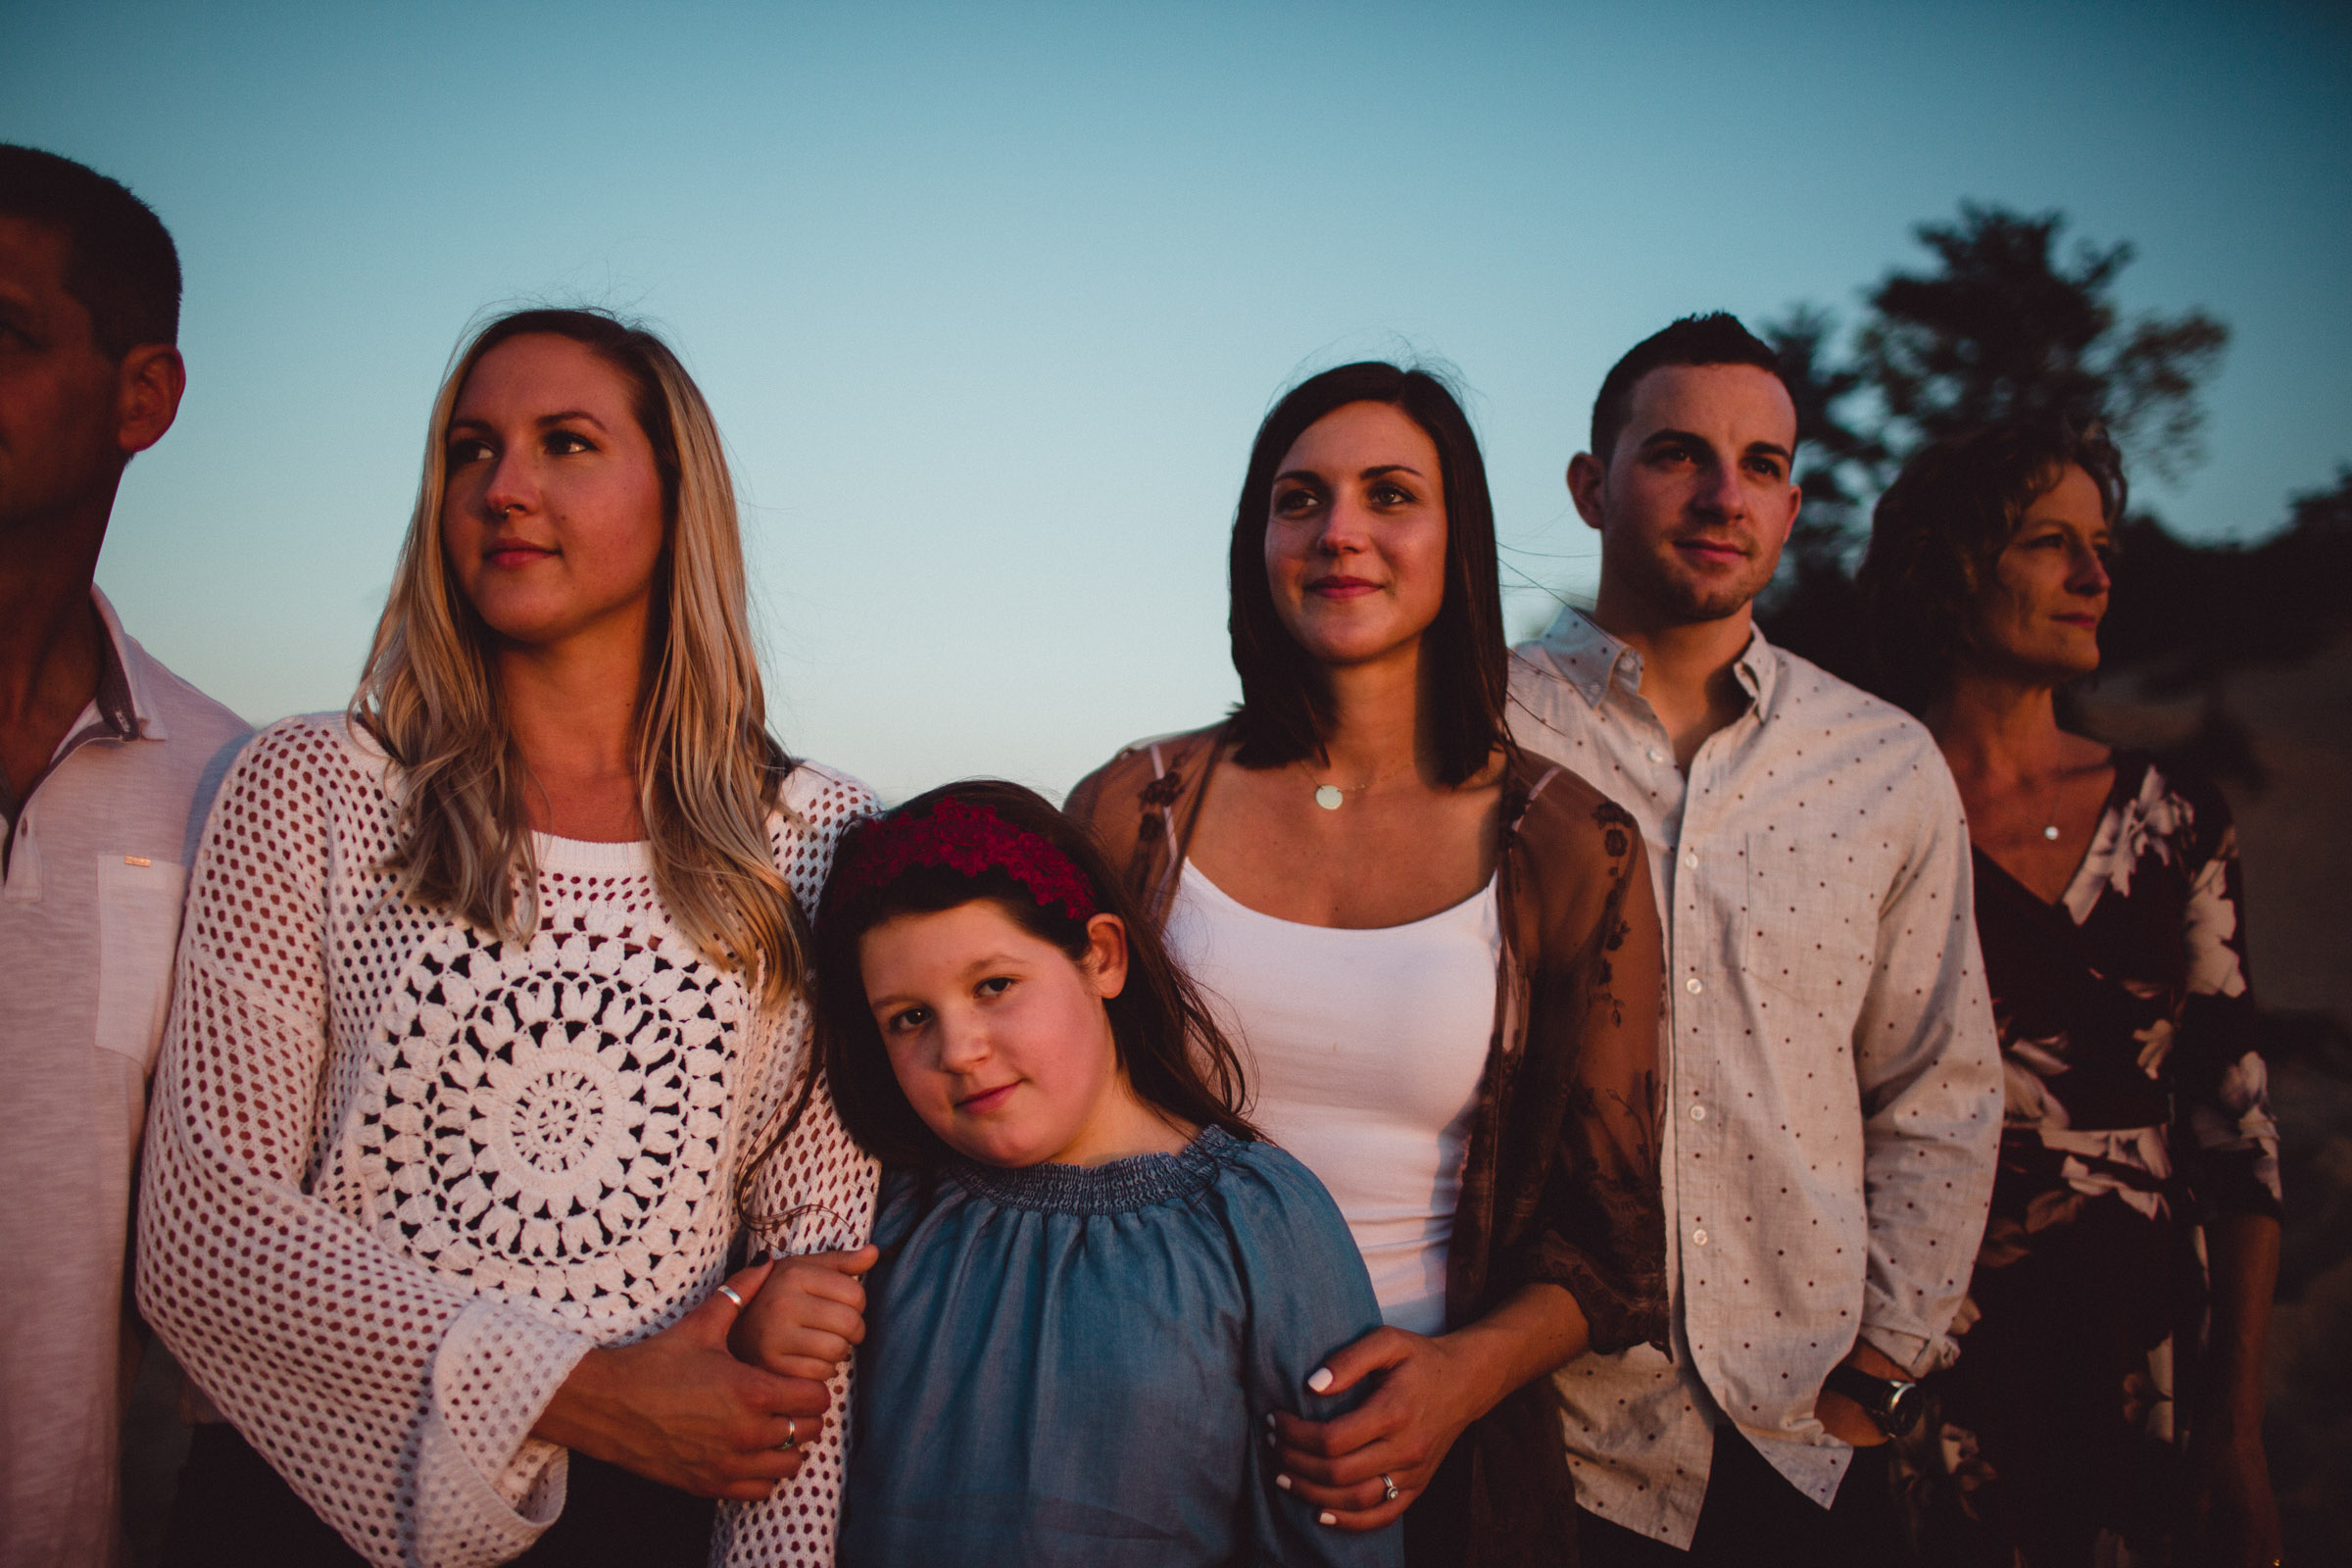 family front lit image at sunset